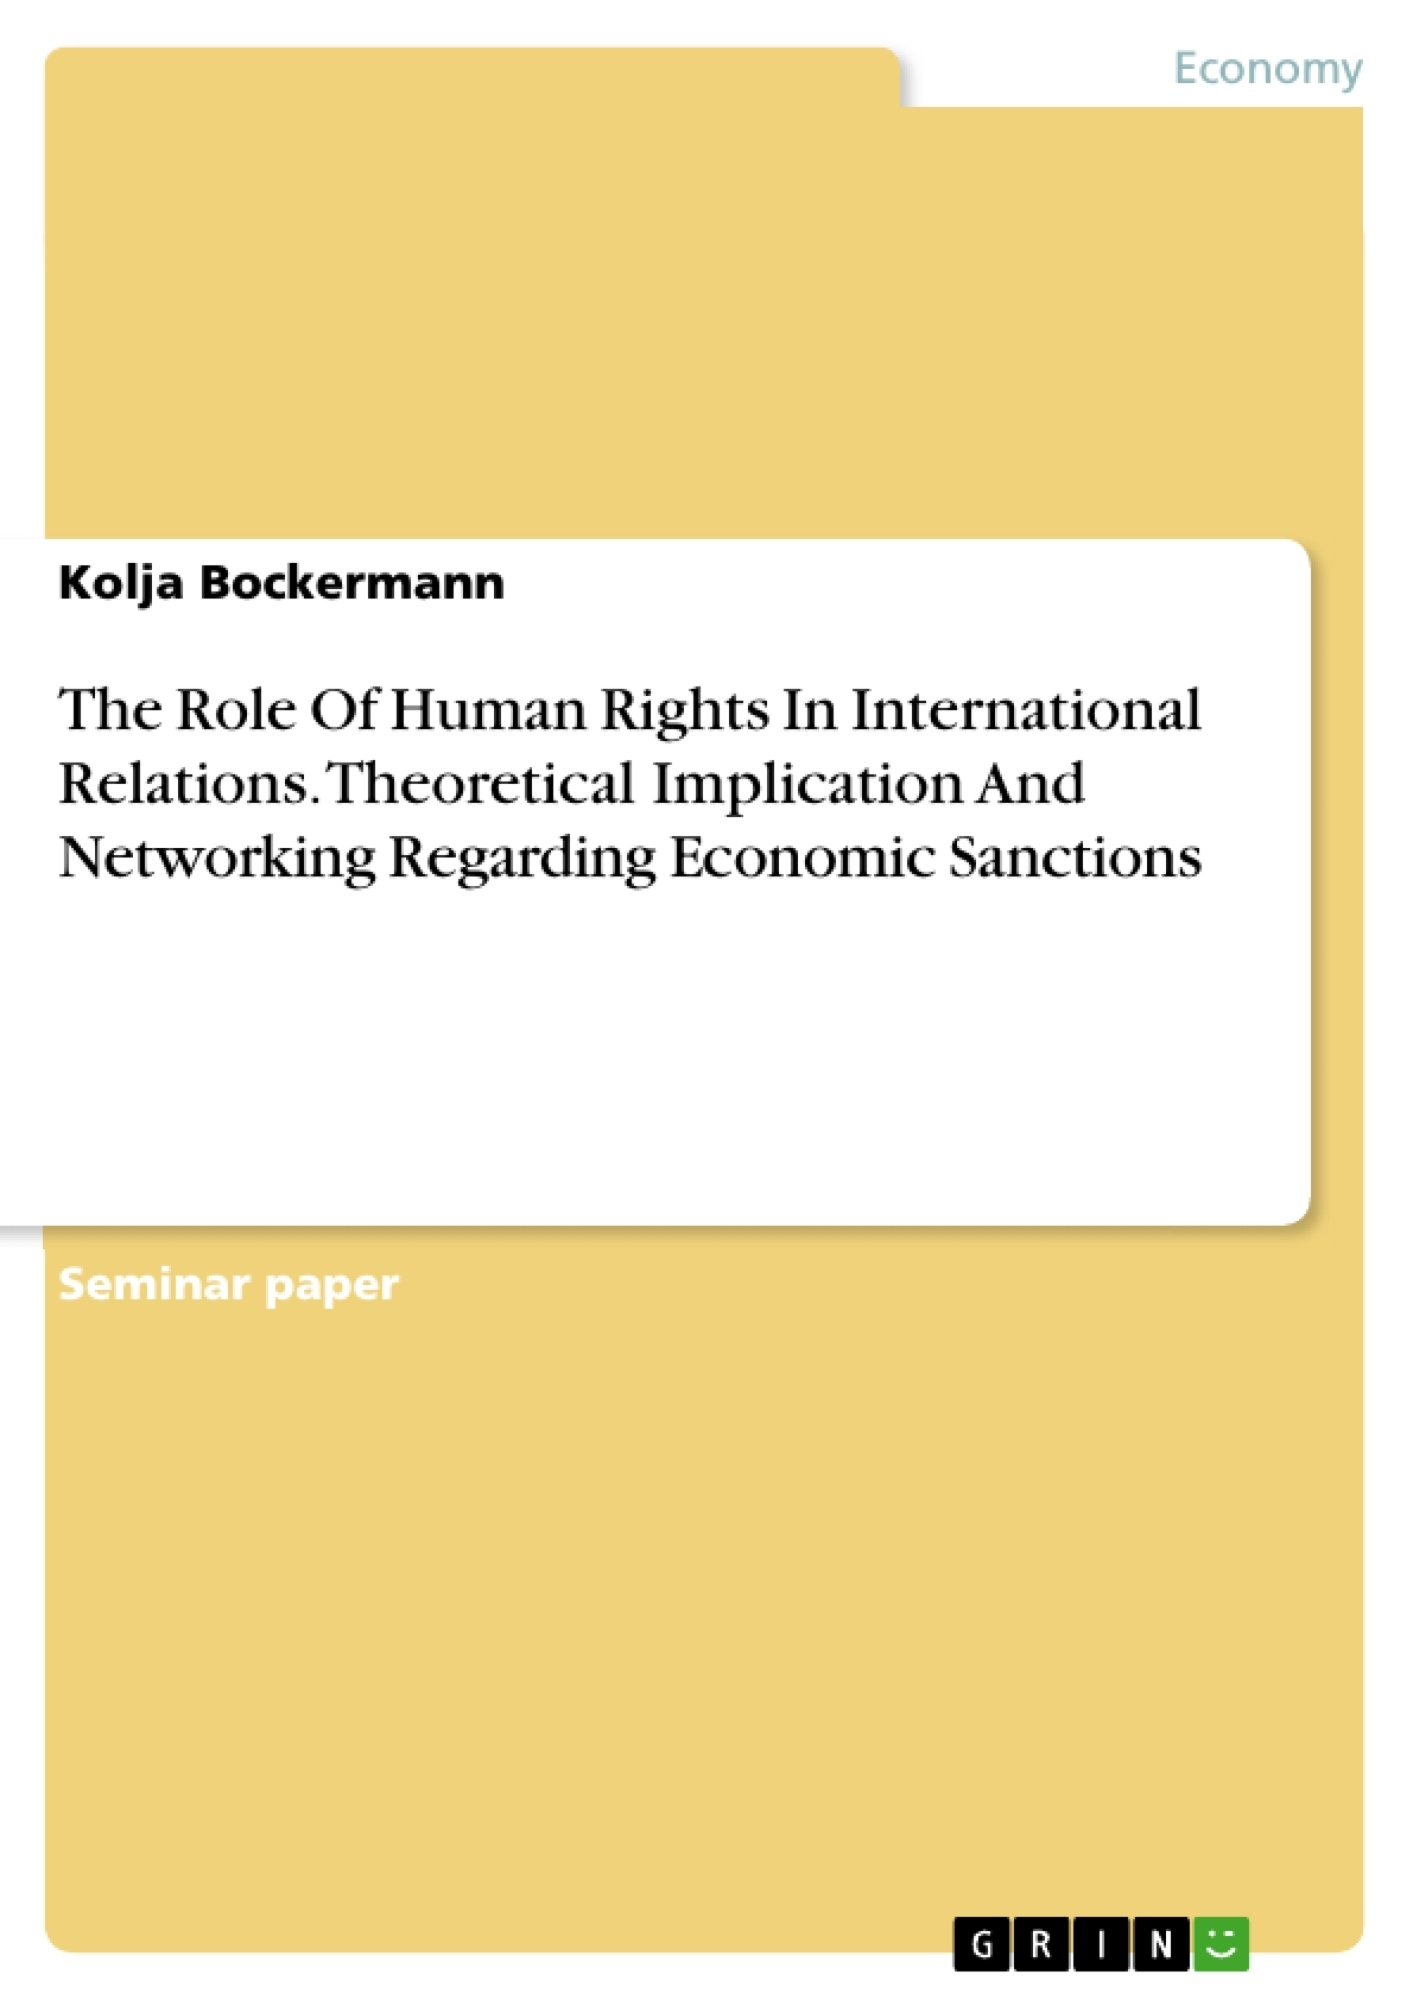 Title: The Role Of Human Rights In International Relations. Theoretical Implication And Networking Regarding Economic Sanctions